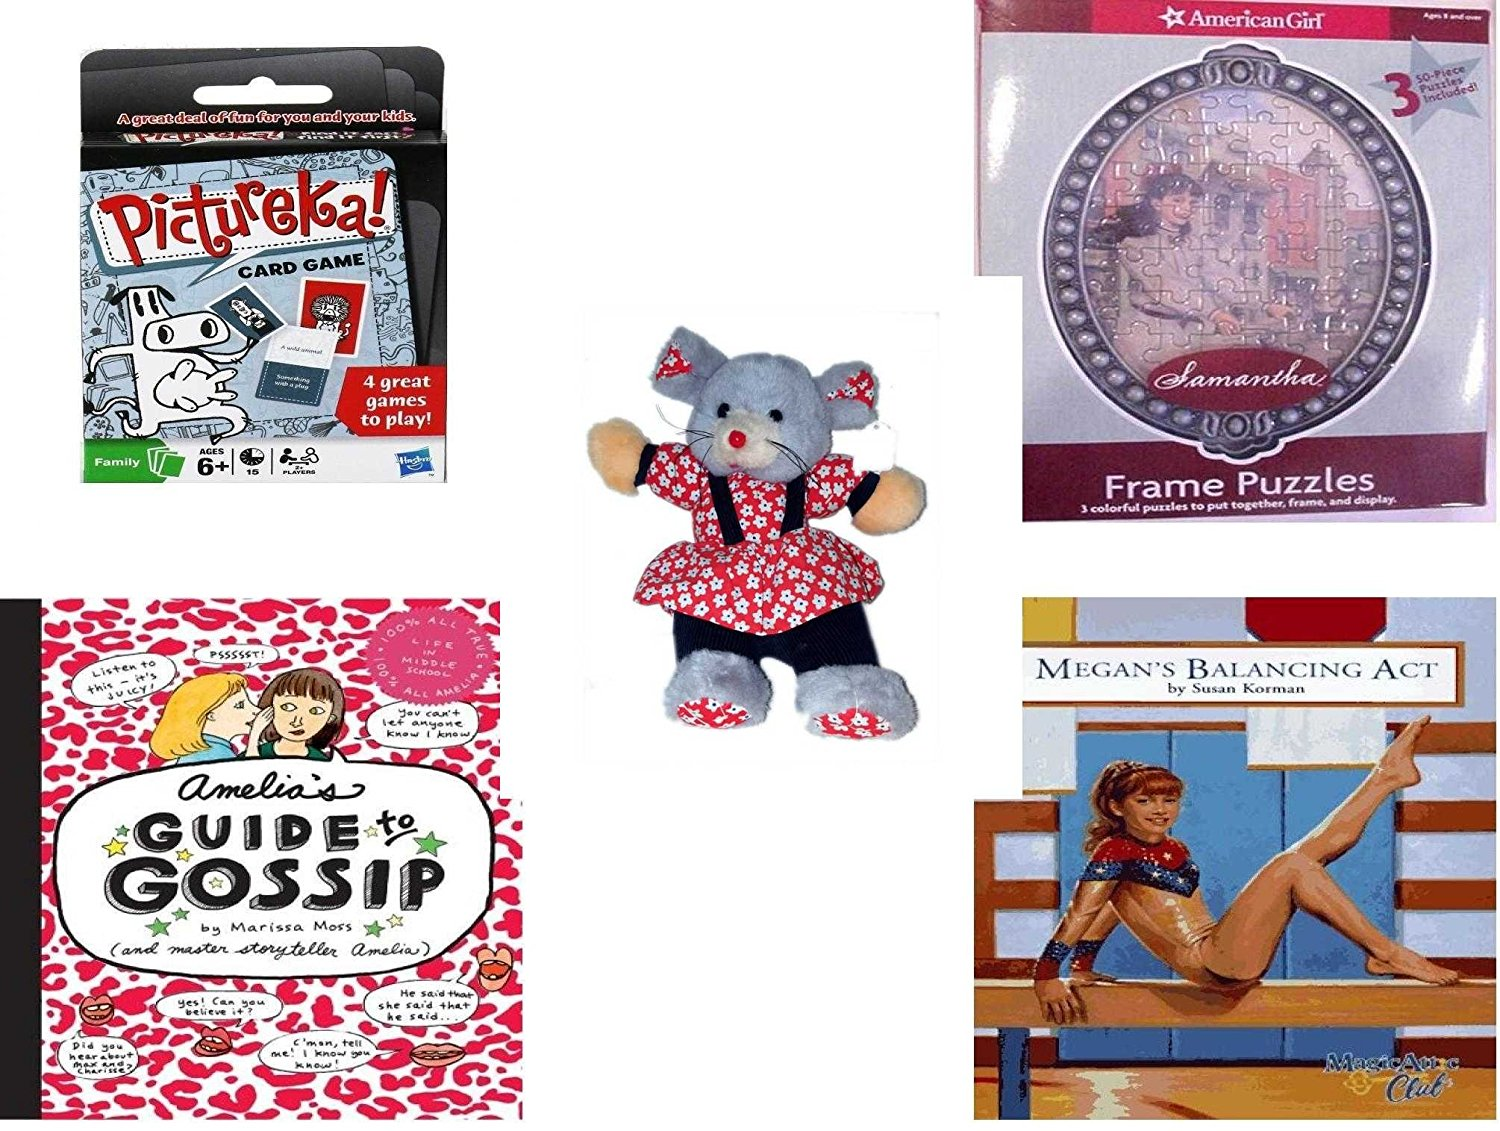 """Girl's Gift Bundle - Ages 6-12 [5 Piece] - Hasbro Games PICTUREKA Card Game - American Girl Frame Puzzles Samantha. - Play-By-Play Red Flower Patterned Girl Mouse Plush 11"""" - Amelia's Guide to Gossi"""